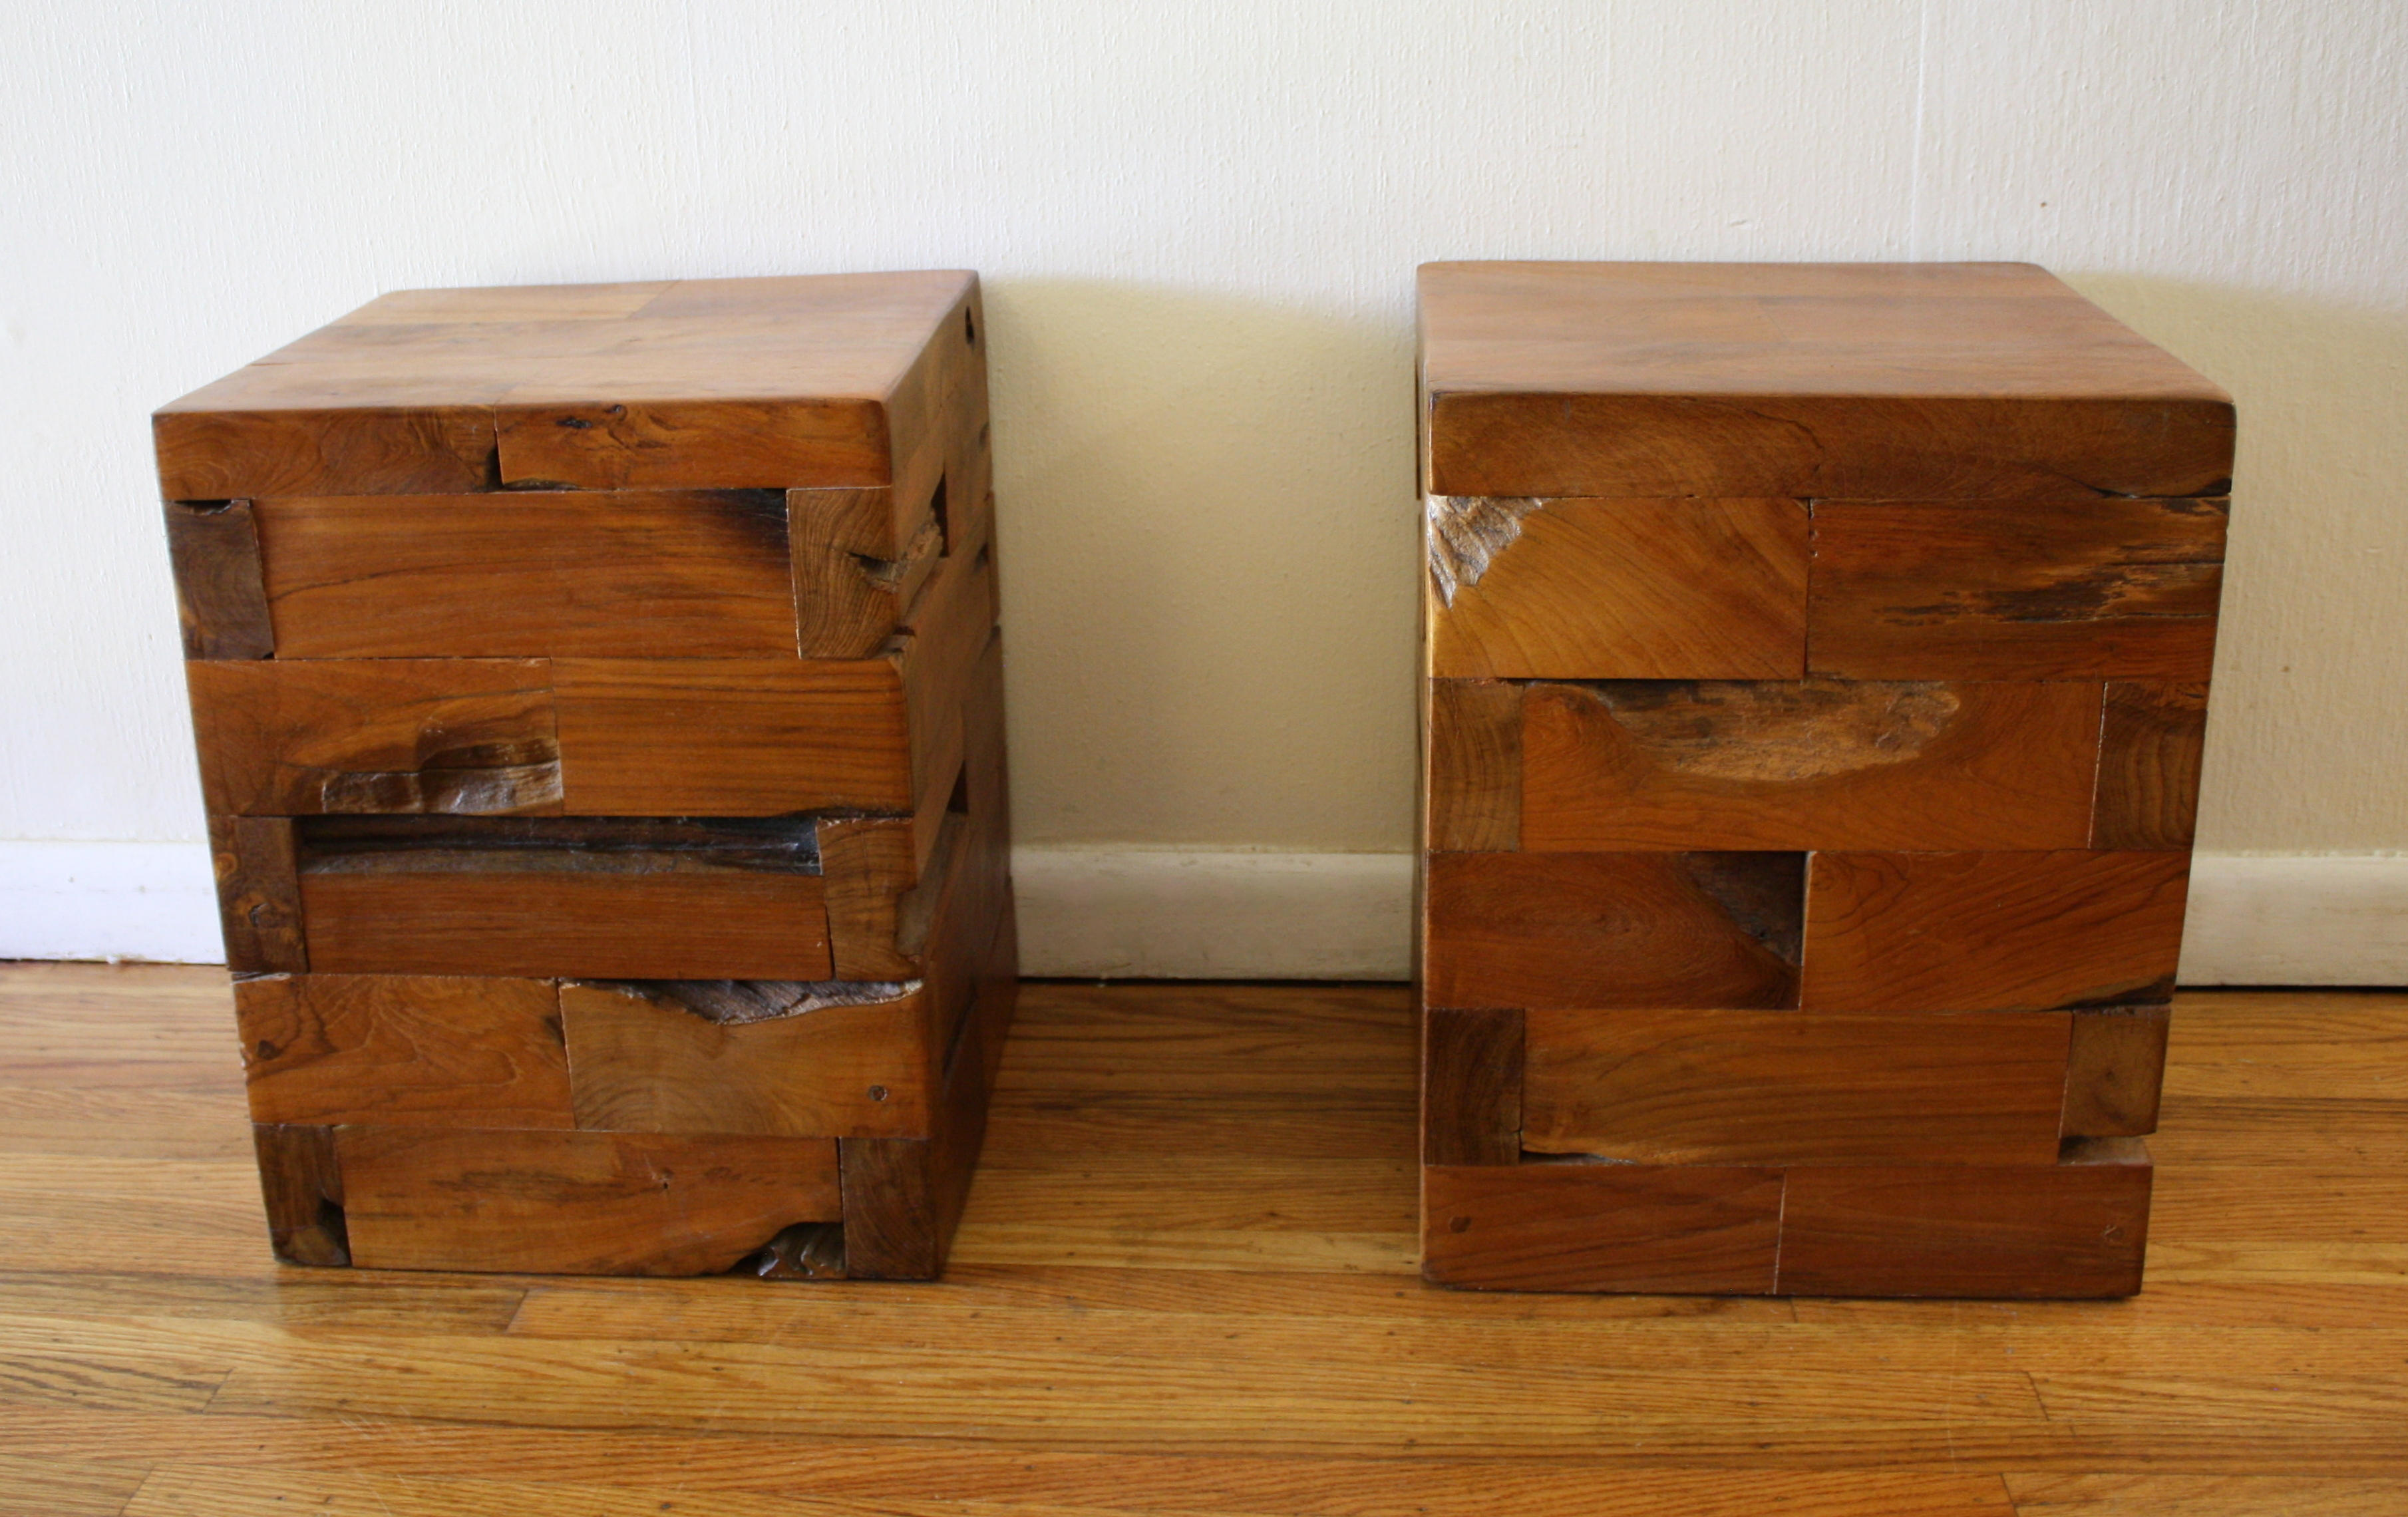 probably outrageous real unfinished solid wood end tables idea chairs stunning landmark table accent industrial salvaged side ked vintage wide cube cherry with drawers block round